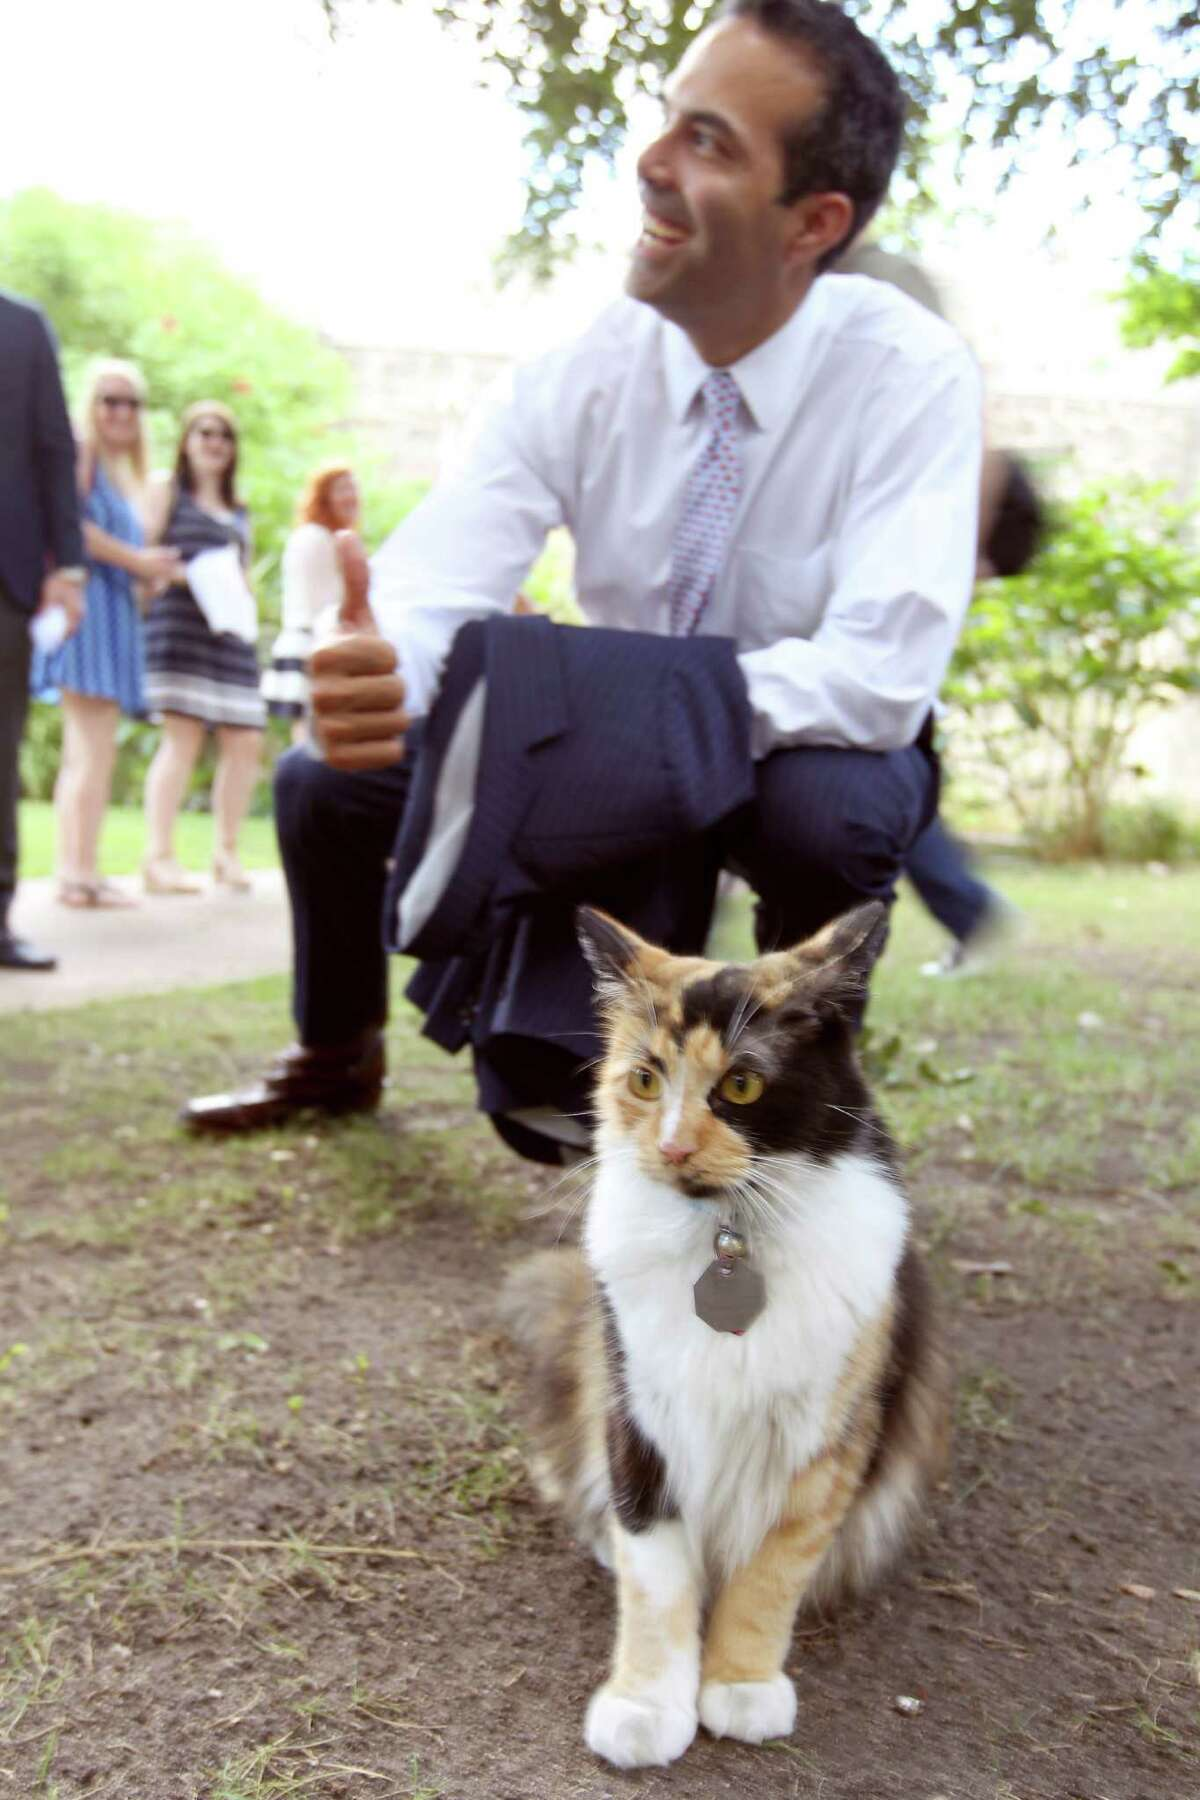 Texas Land Commissioner George P. Bush poses Wednesday with Bella the Alamo Cat while on a tour of the Alamo grounds. Bush was in San Antonio to celebrate the $31.5 million the General Land Office received from the Legislature to help preserve and develop the Alamo.